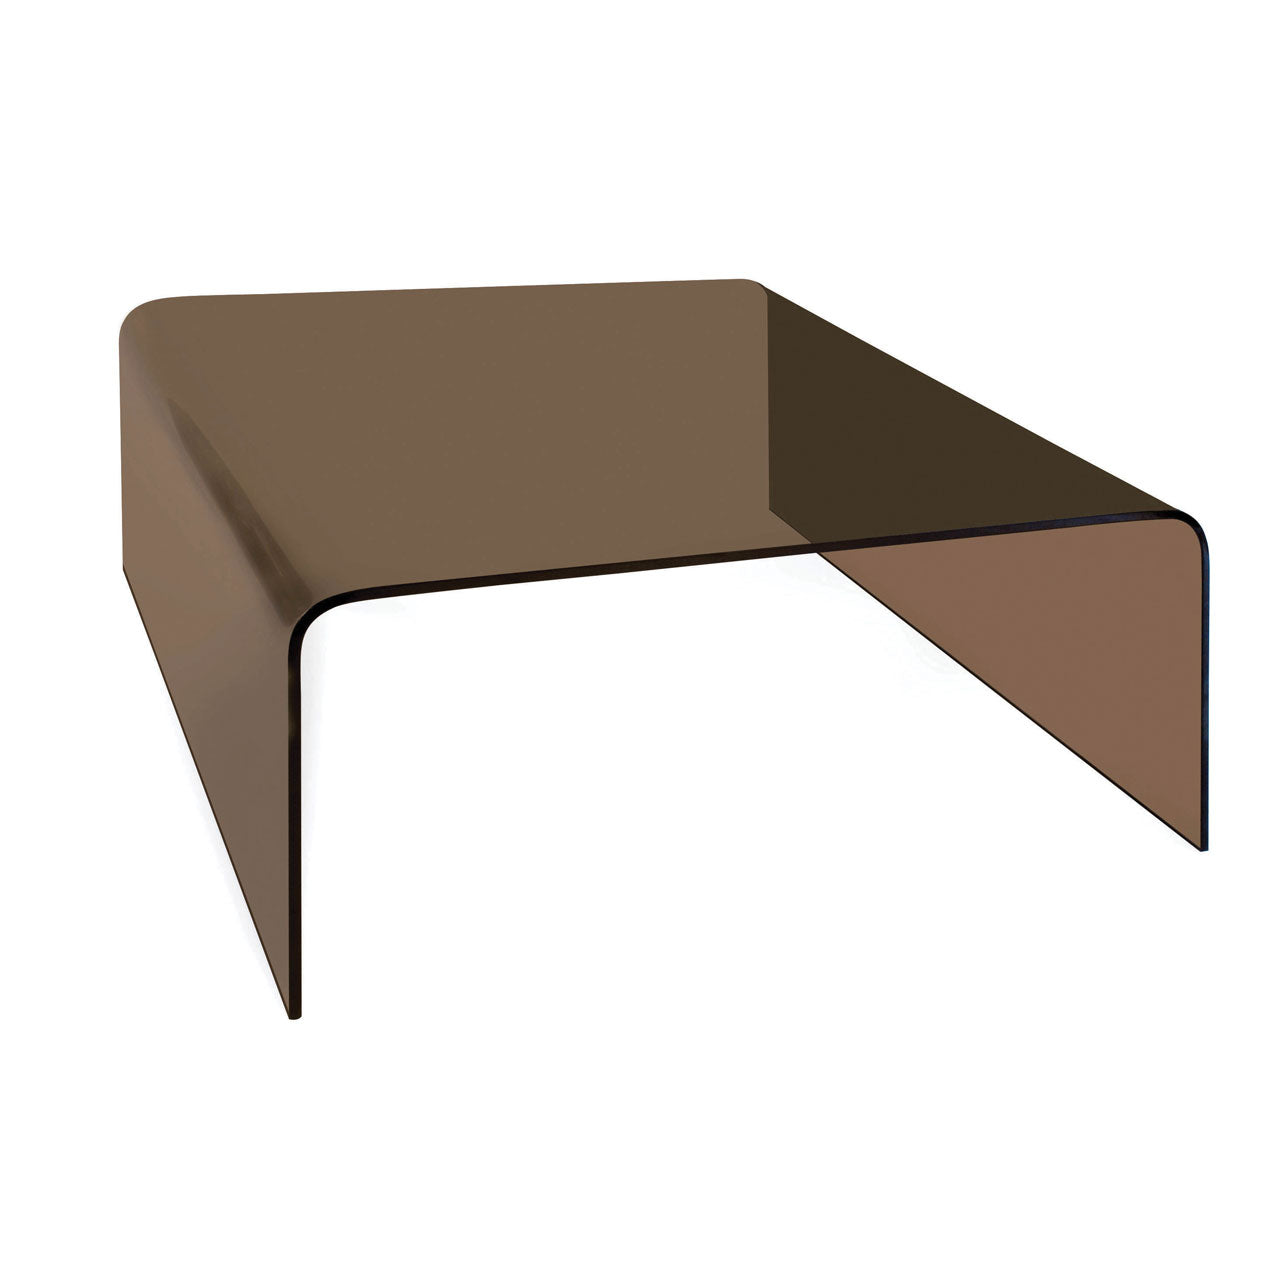 Cascade Square Coffee Table - Ezzo